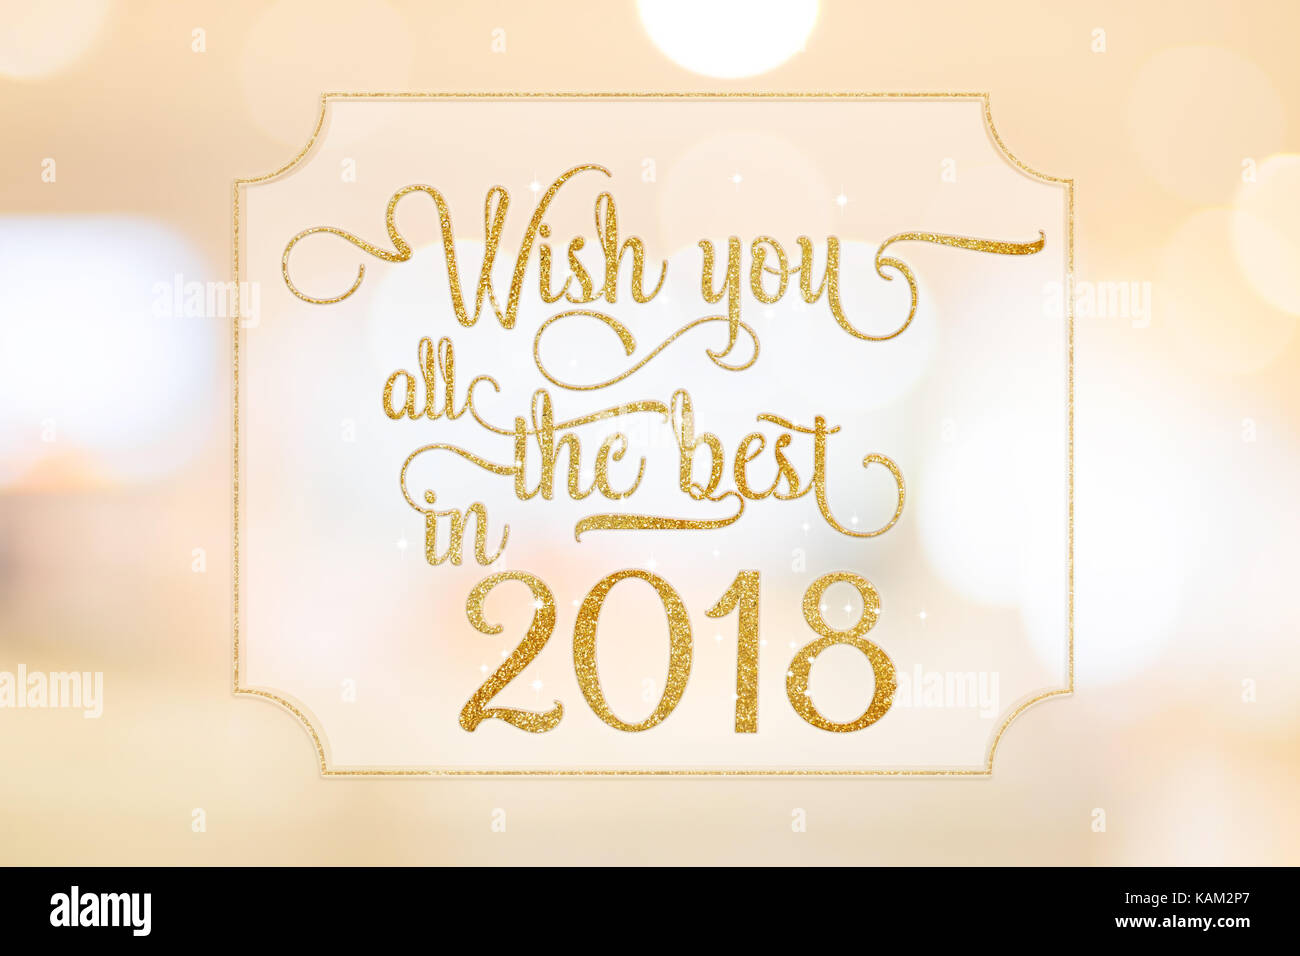 Wish you all the best in 2018 gold glitter word on white frame at wish you all the best in 2018 gold glitter word on white frame at abstract blurred bokeh light background holiday concept kristyandbryce Image collections